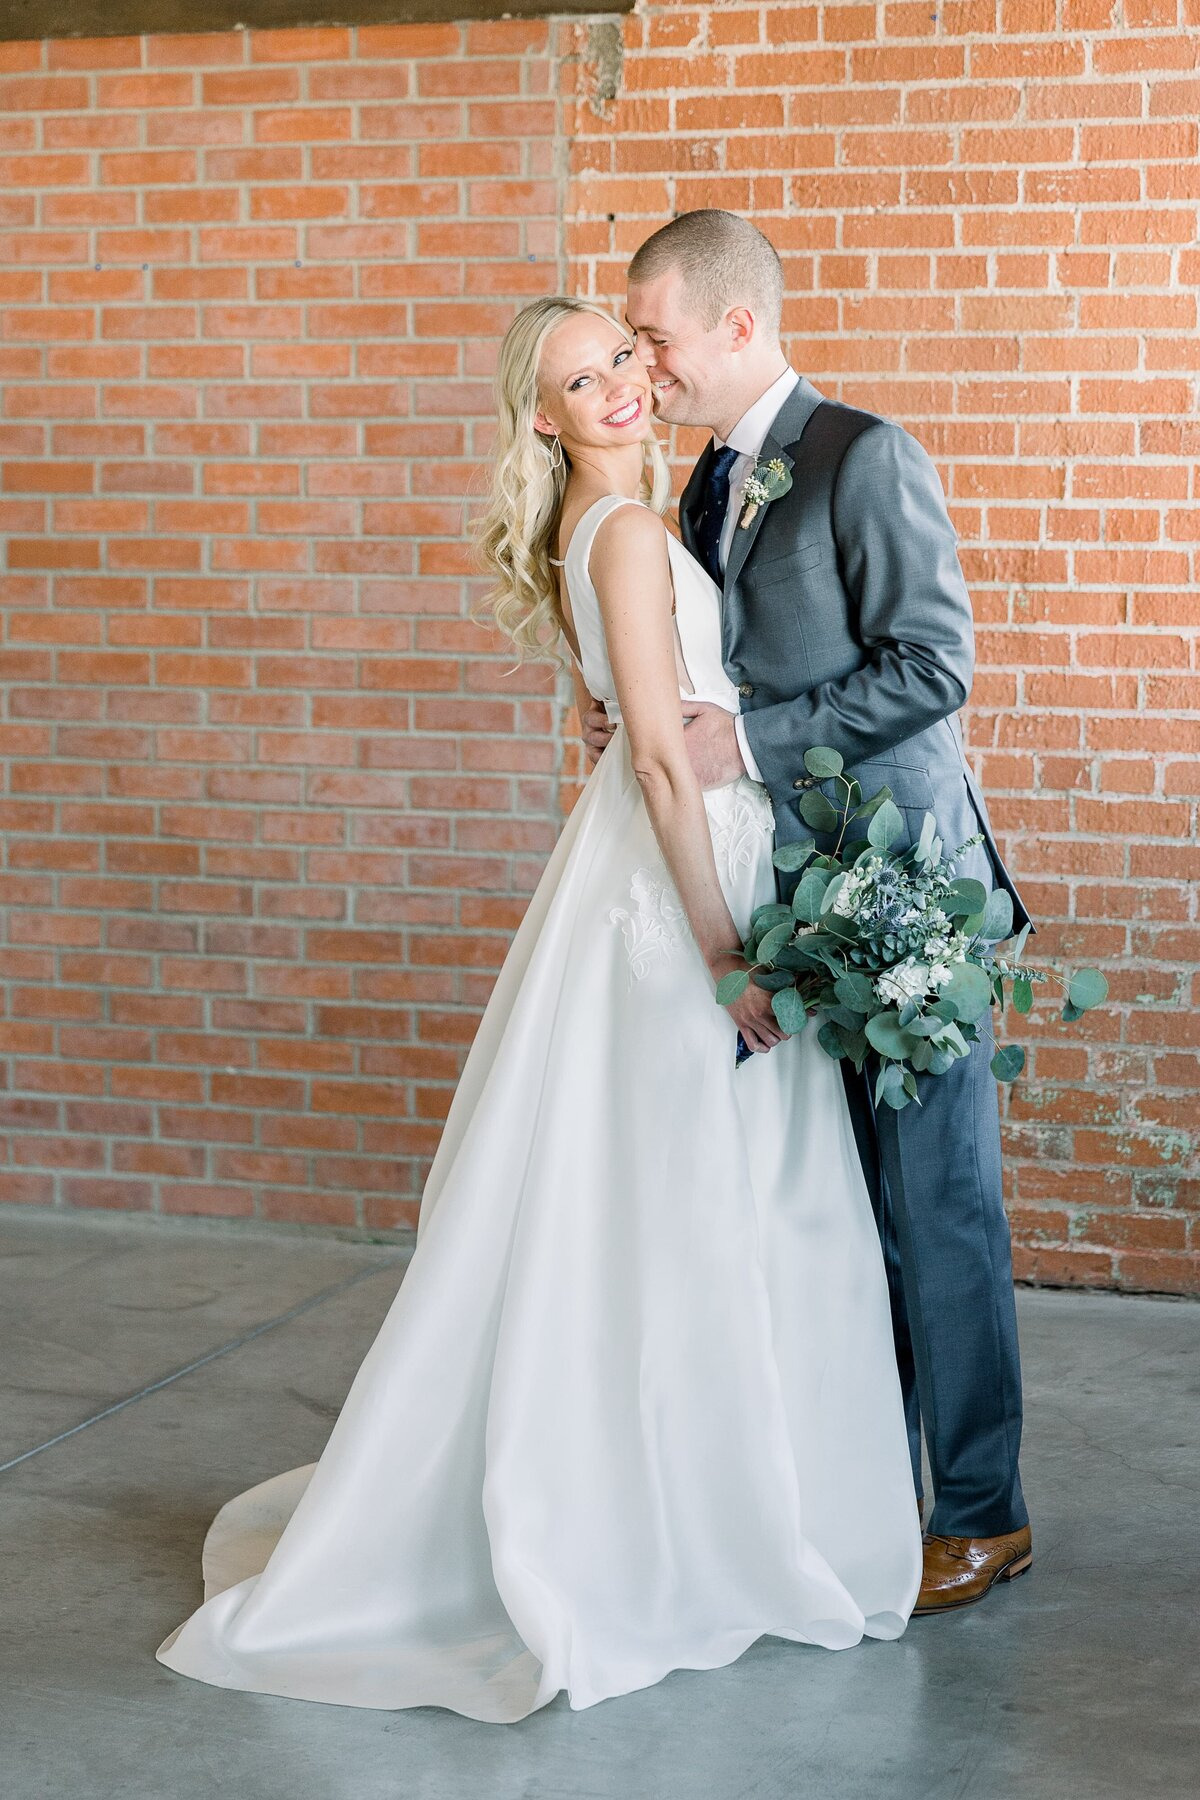 Warehouse-215-wedding-by-Leslie-Ann-Photography-00031